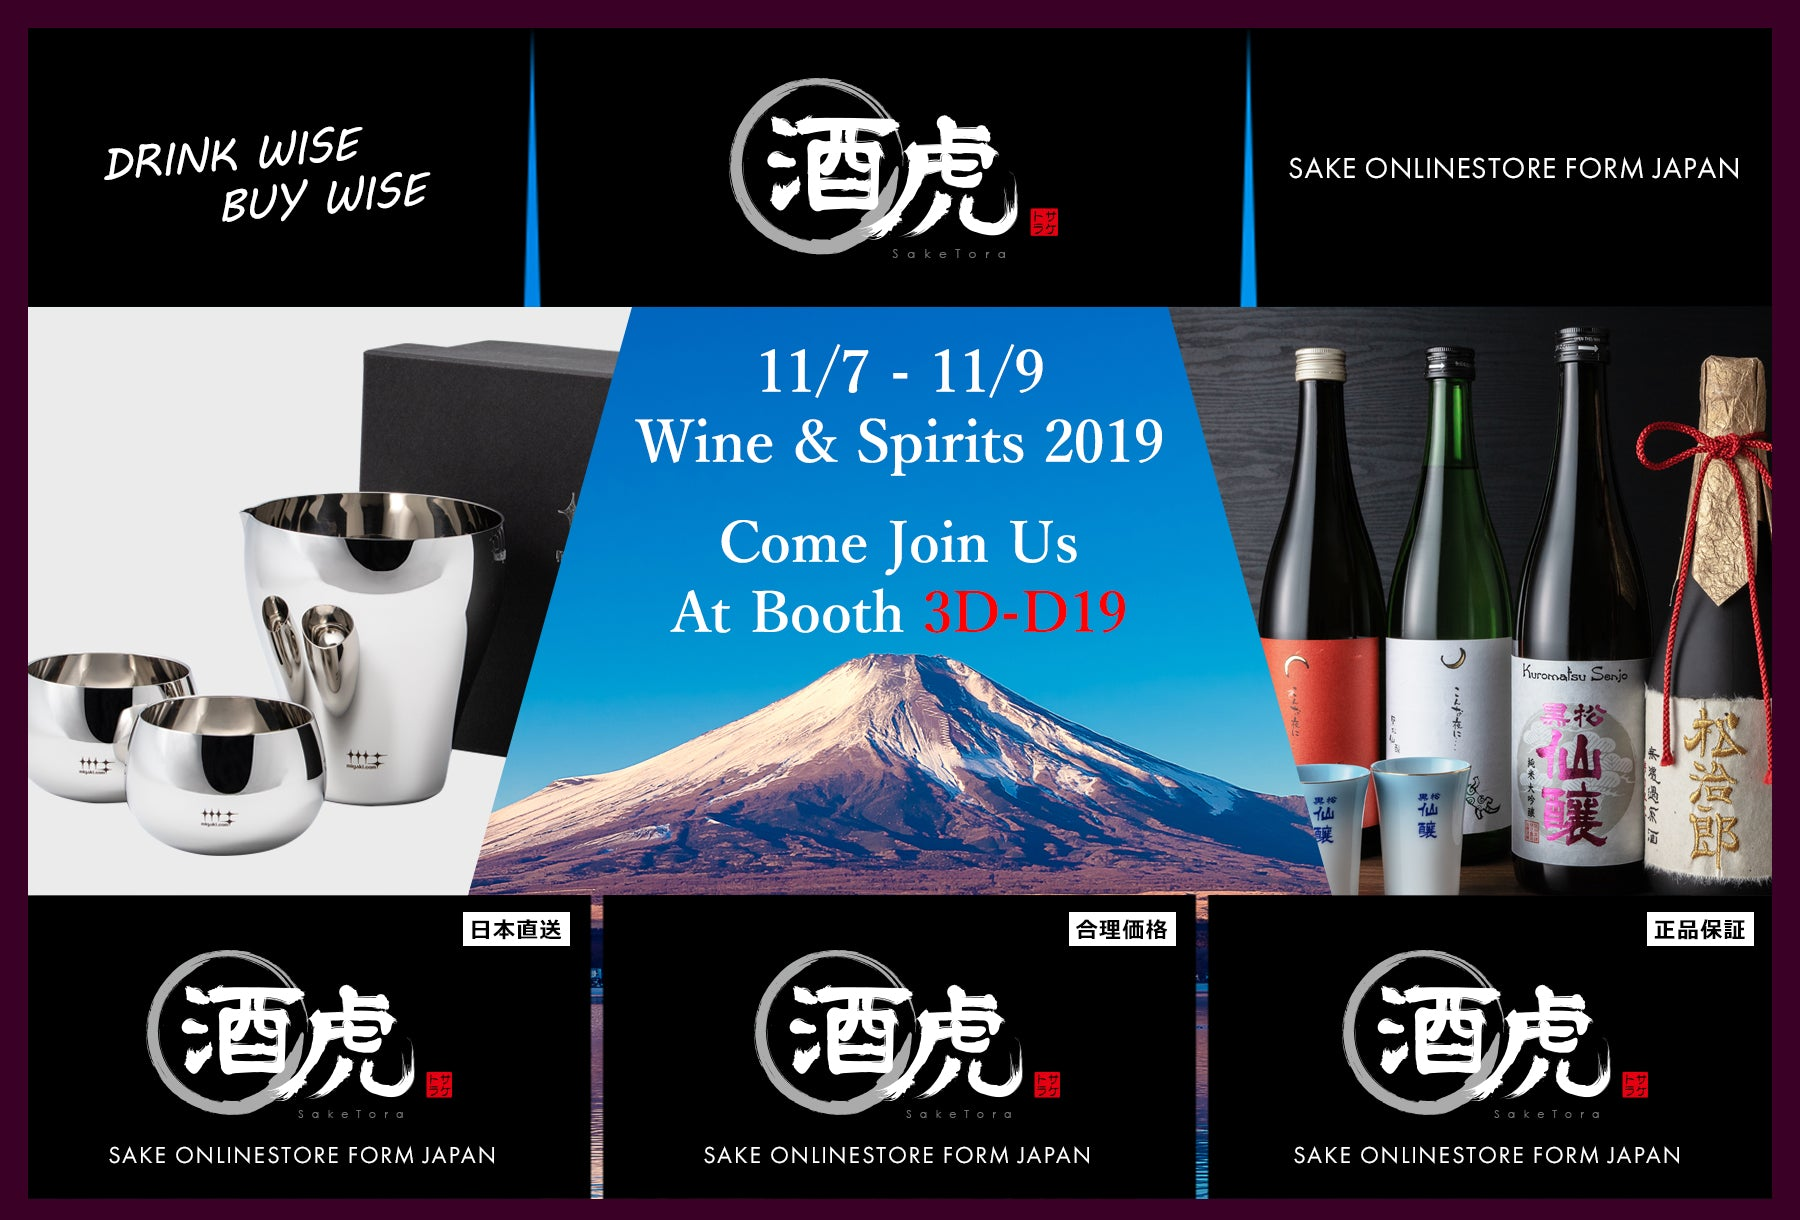 Saketora - Wine and Spirits 2019